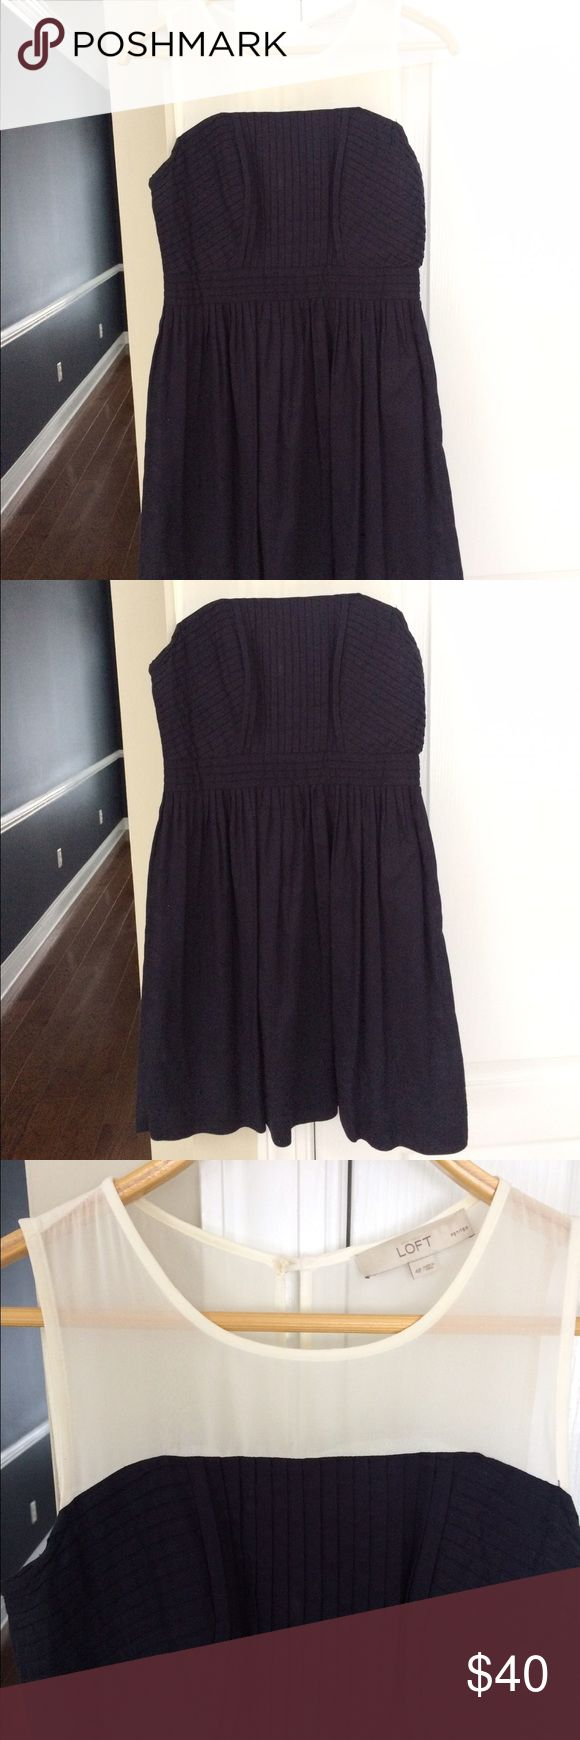 Loft dress size 4p Navy blue/sheer white top Loft dress. Size 4p (I wear 2/4 regular). LOFT Dresses